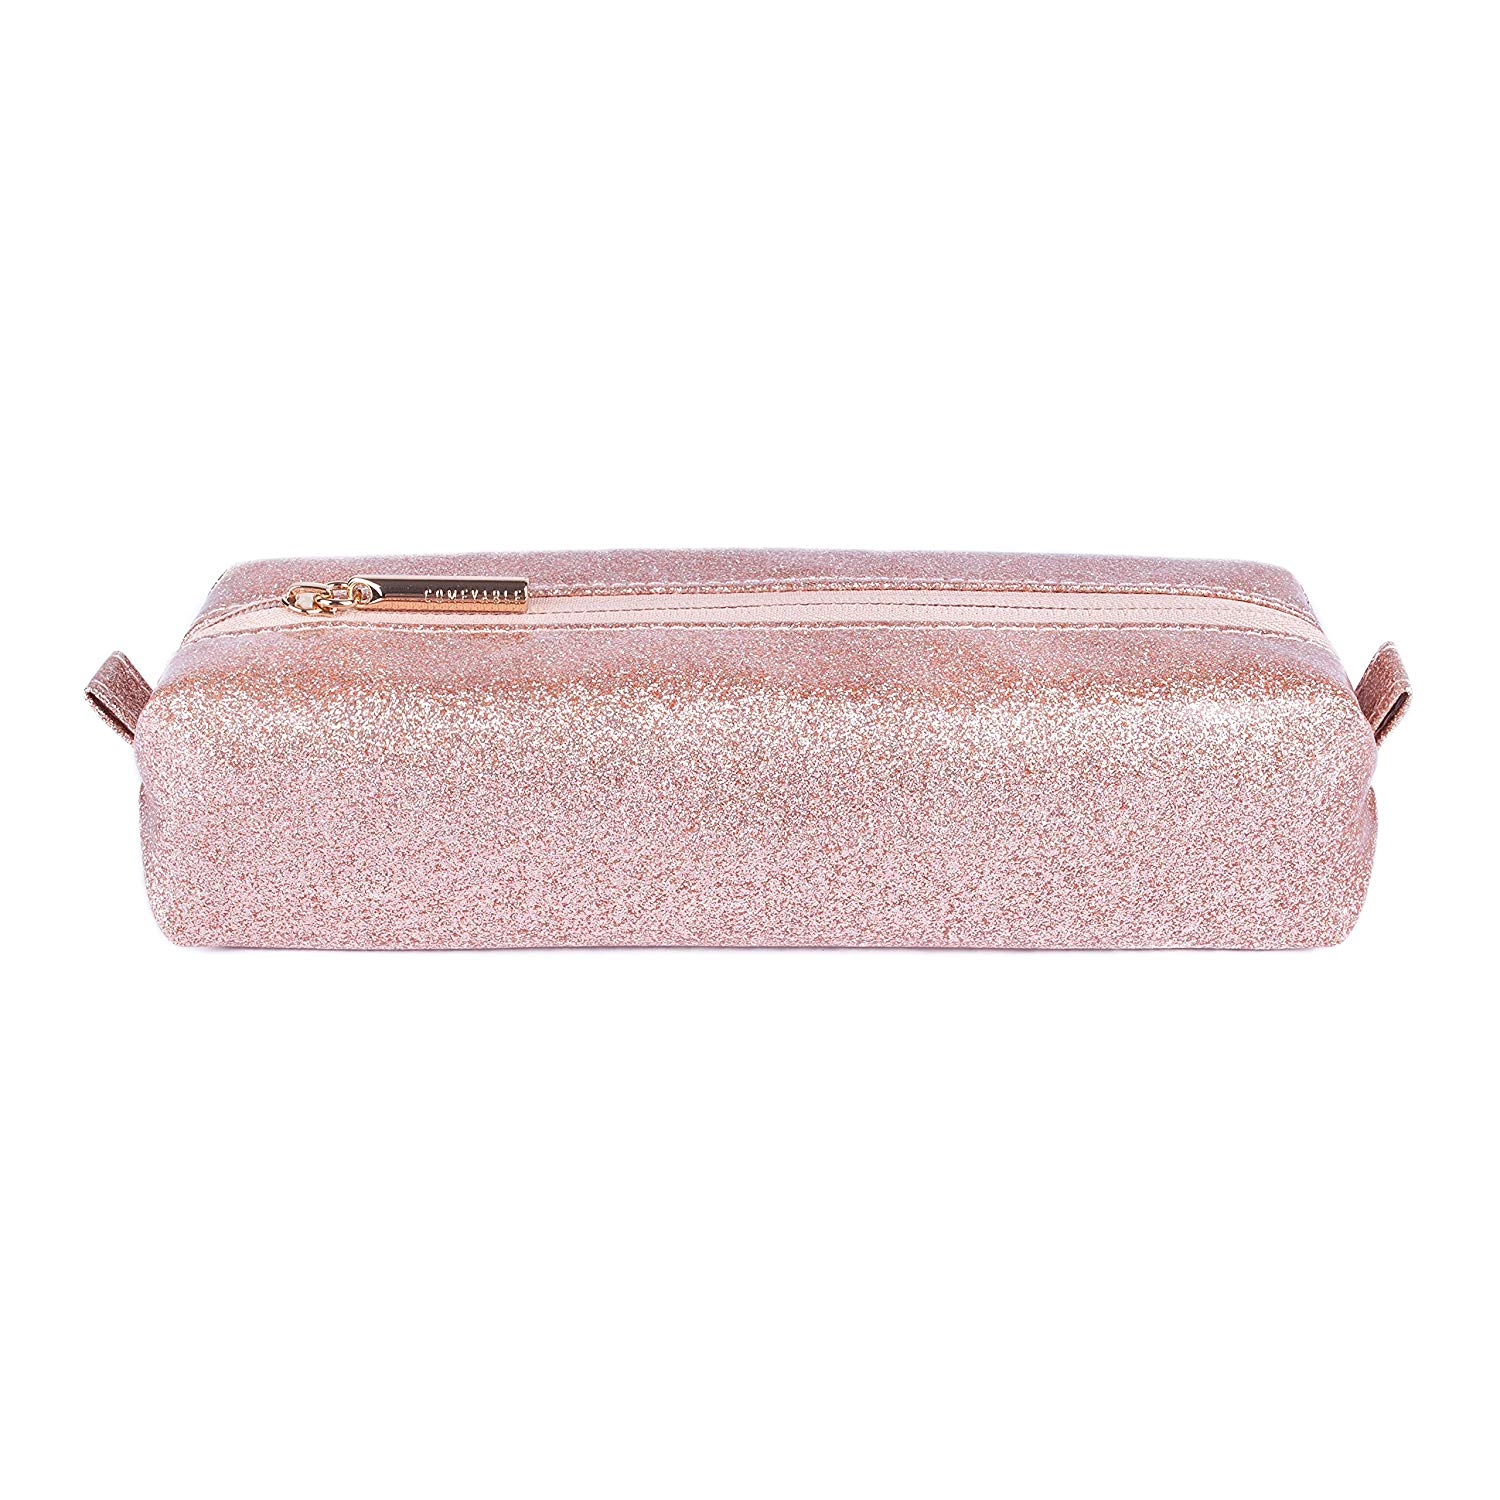 Get Quotations Comfyable Mini Makeup Bag For Purse Small Cosmetic Sparkly